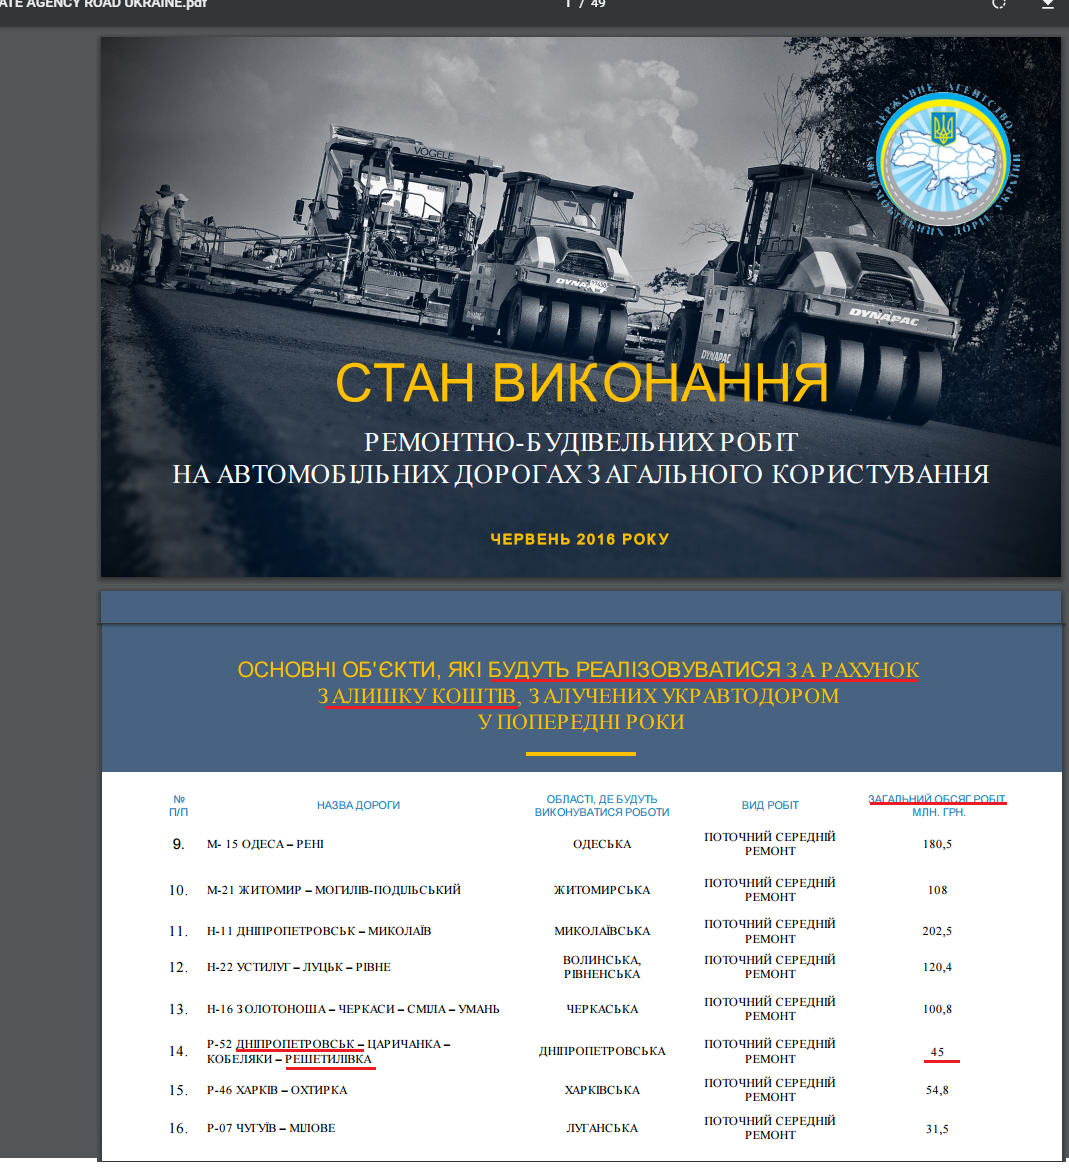 file:///C:/Users/user29/Downloads/STATE%20AGENCY%20ROAD%20UKRAINE.pdf